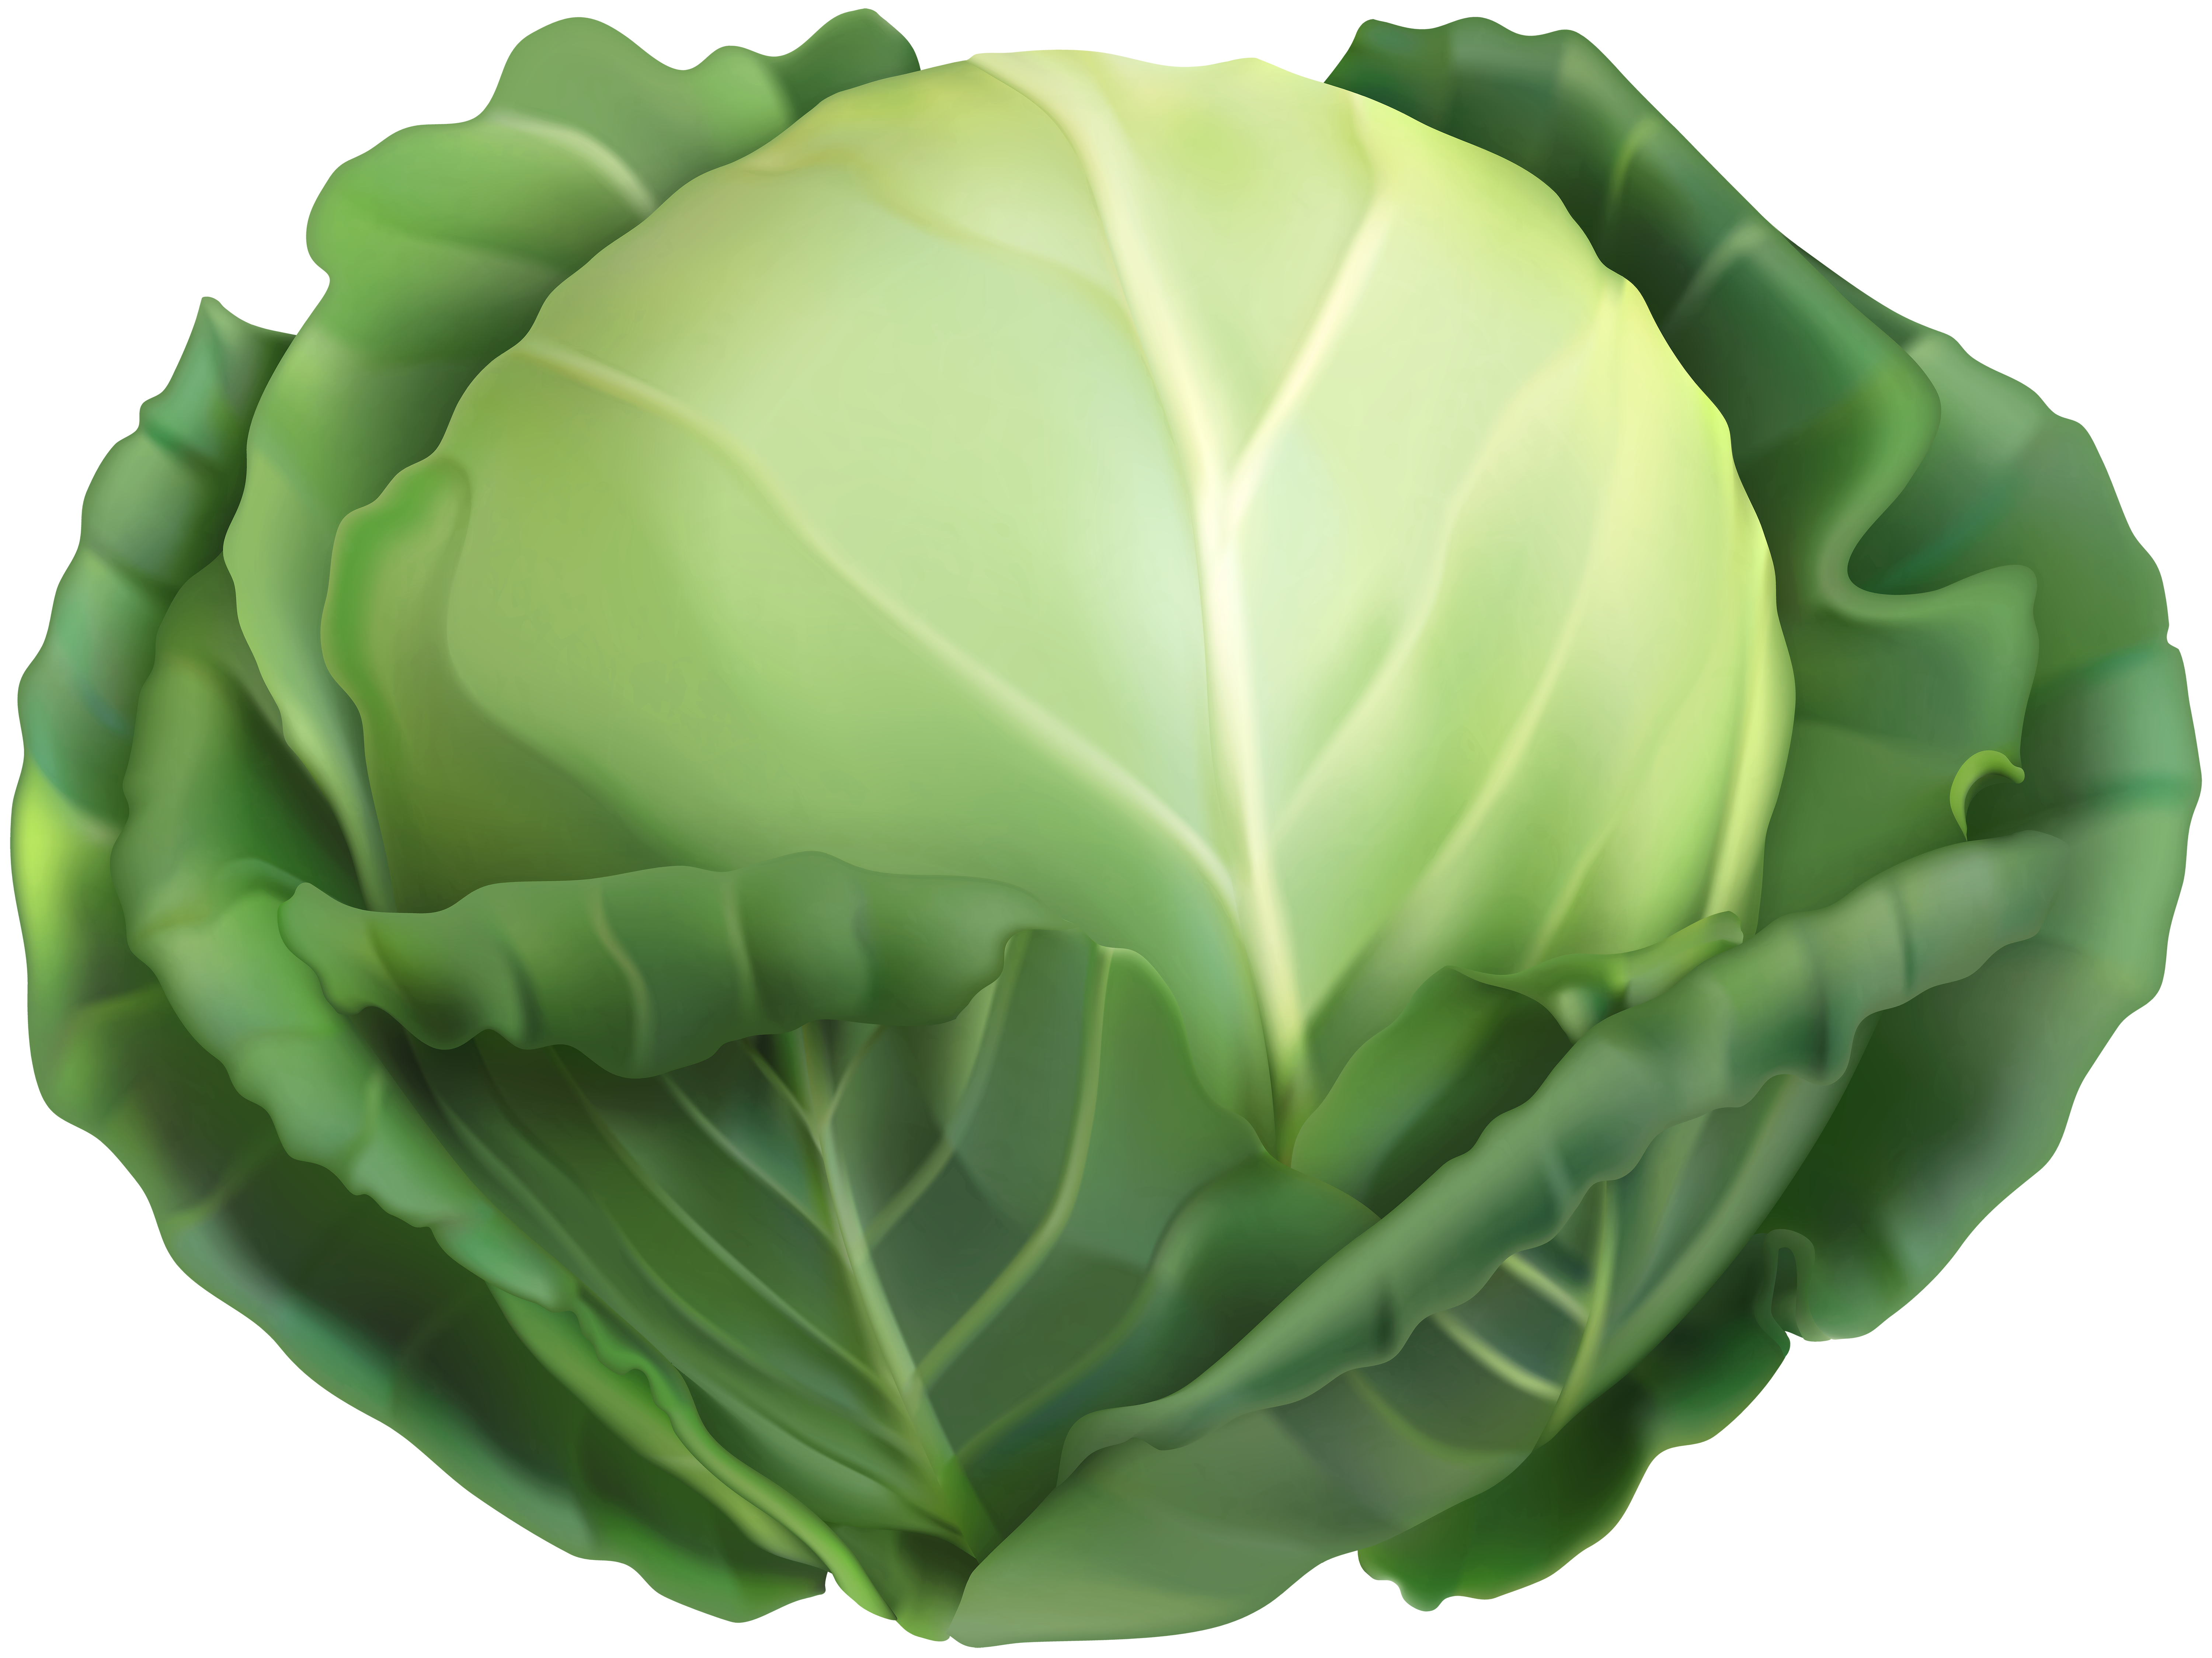 Cabbage clipart. Png clip art image